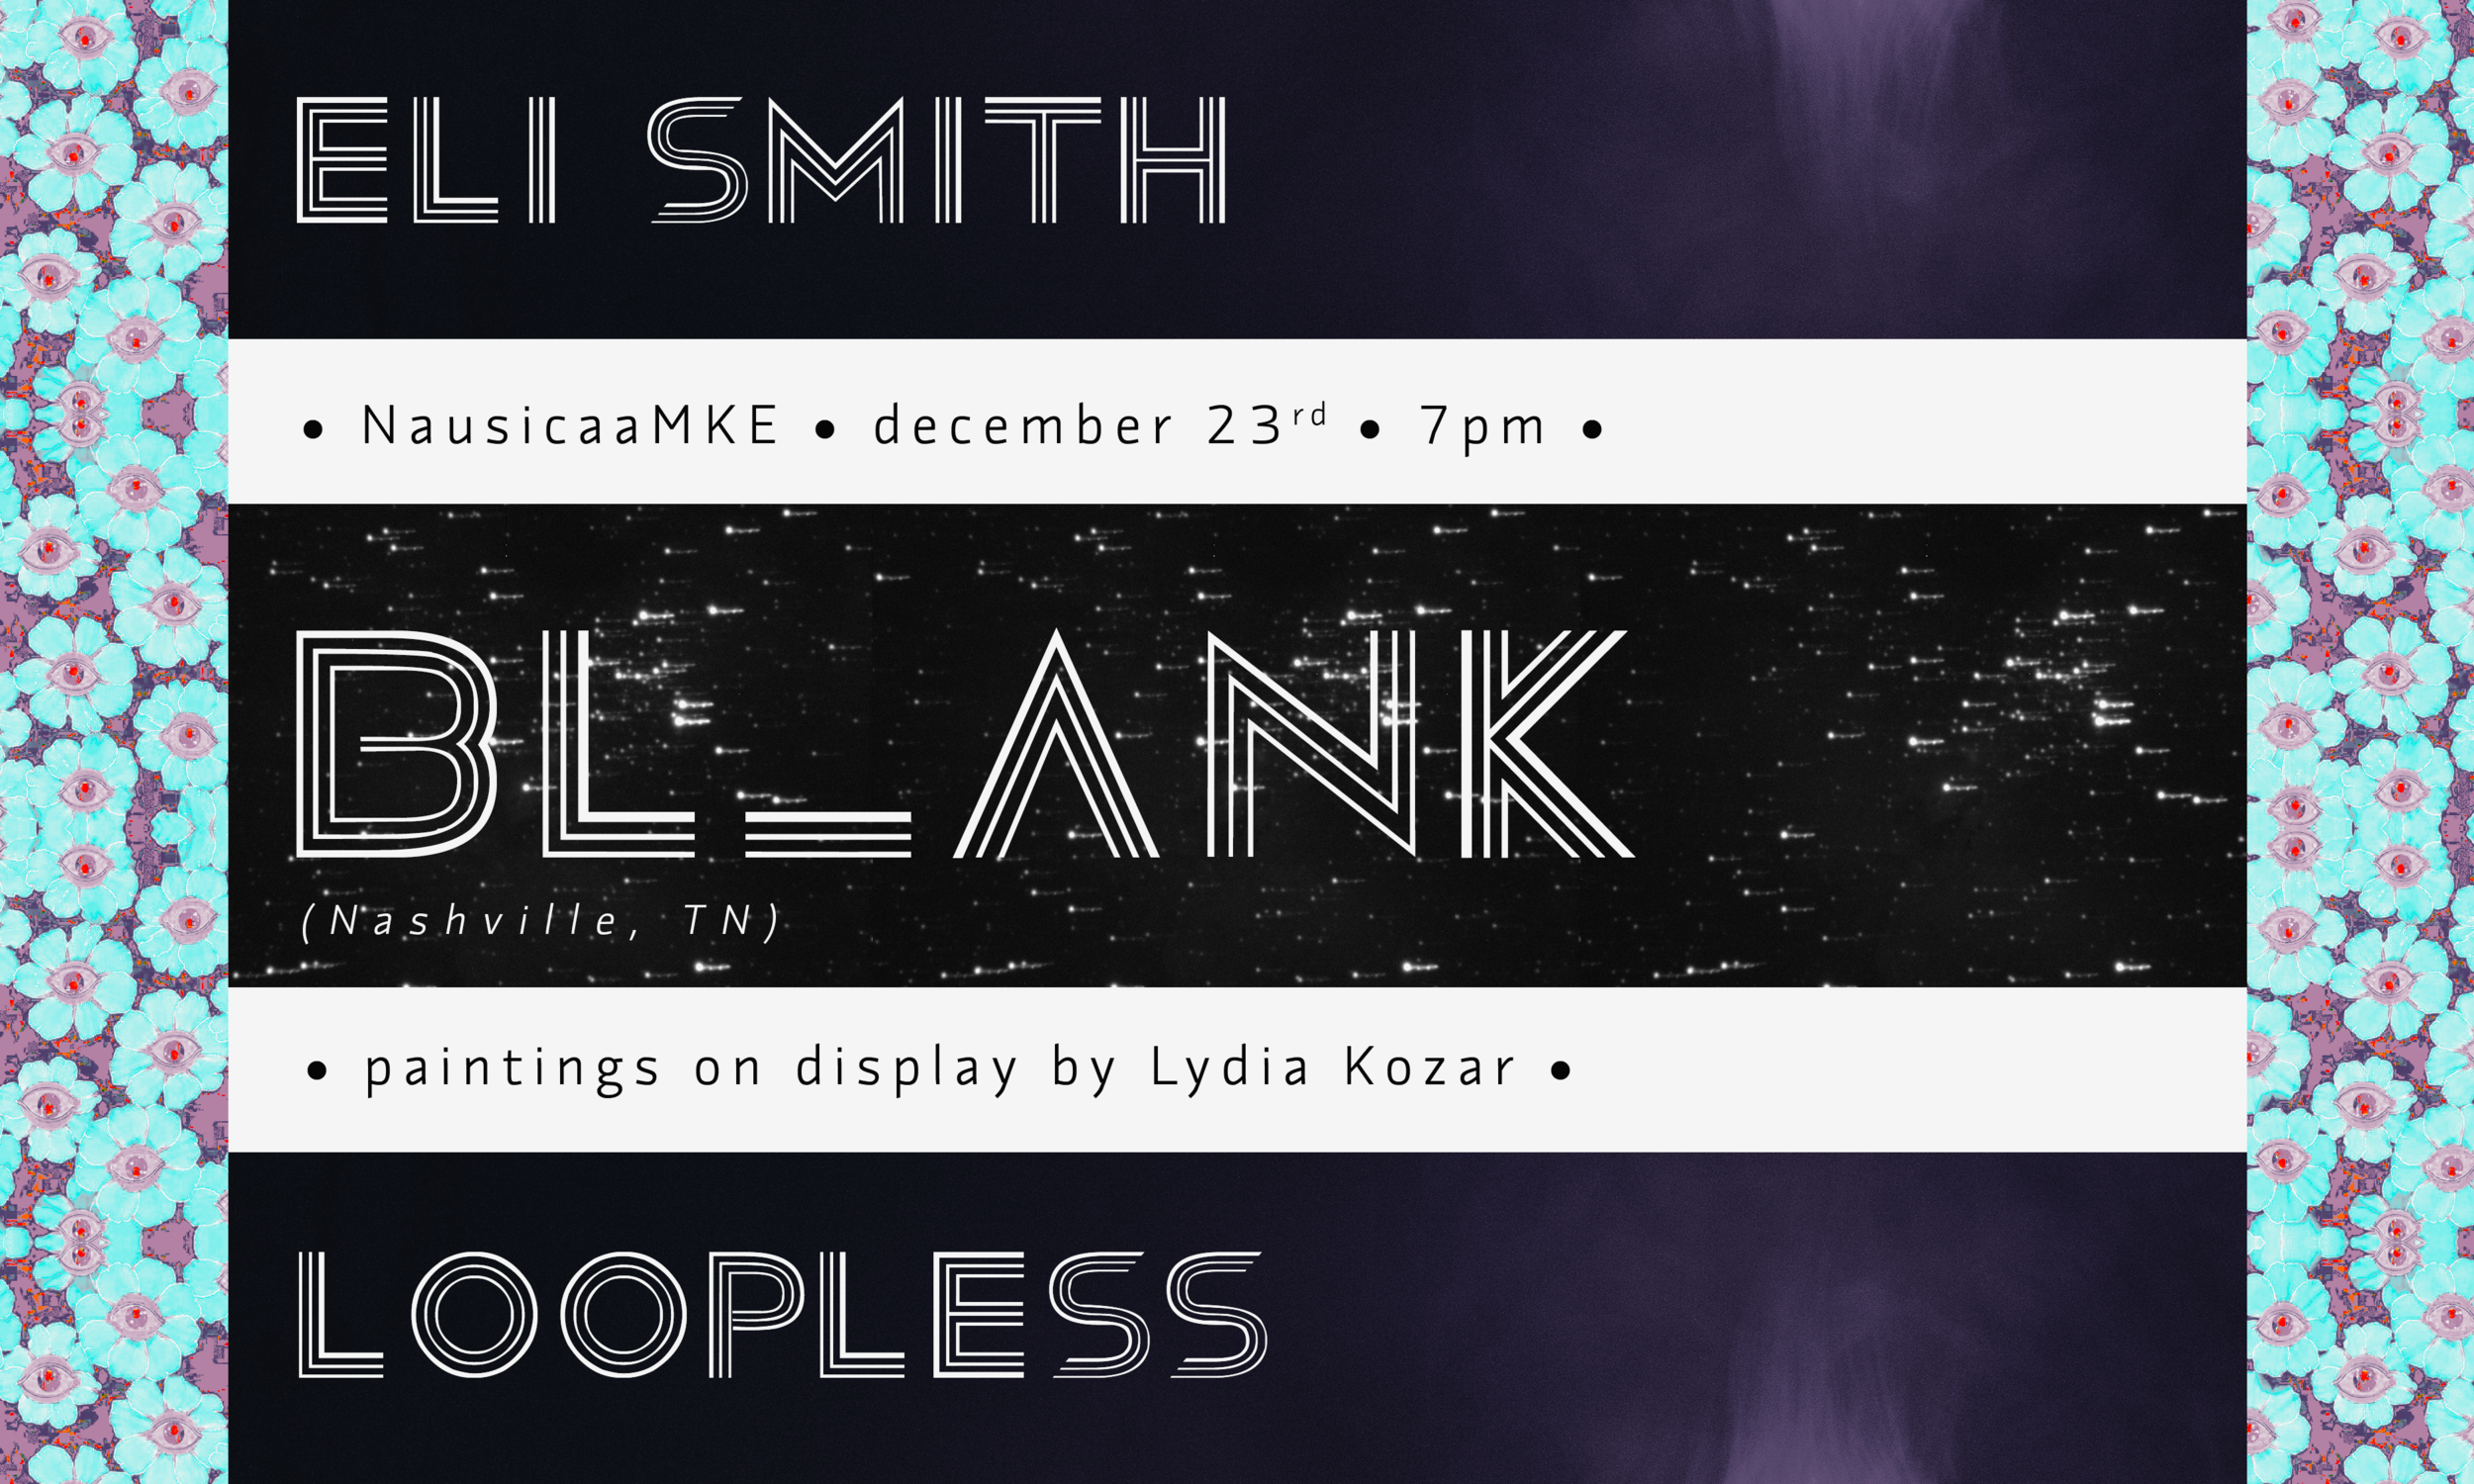 blank_eli smith_loopless.png